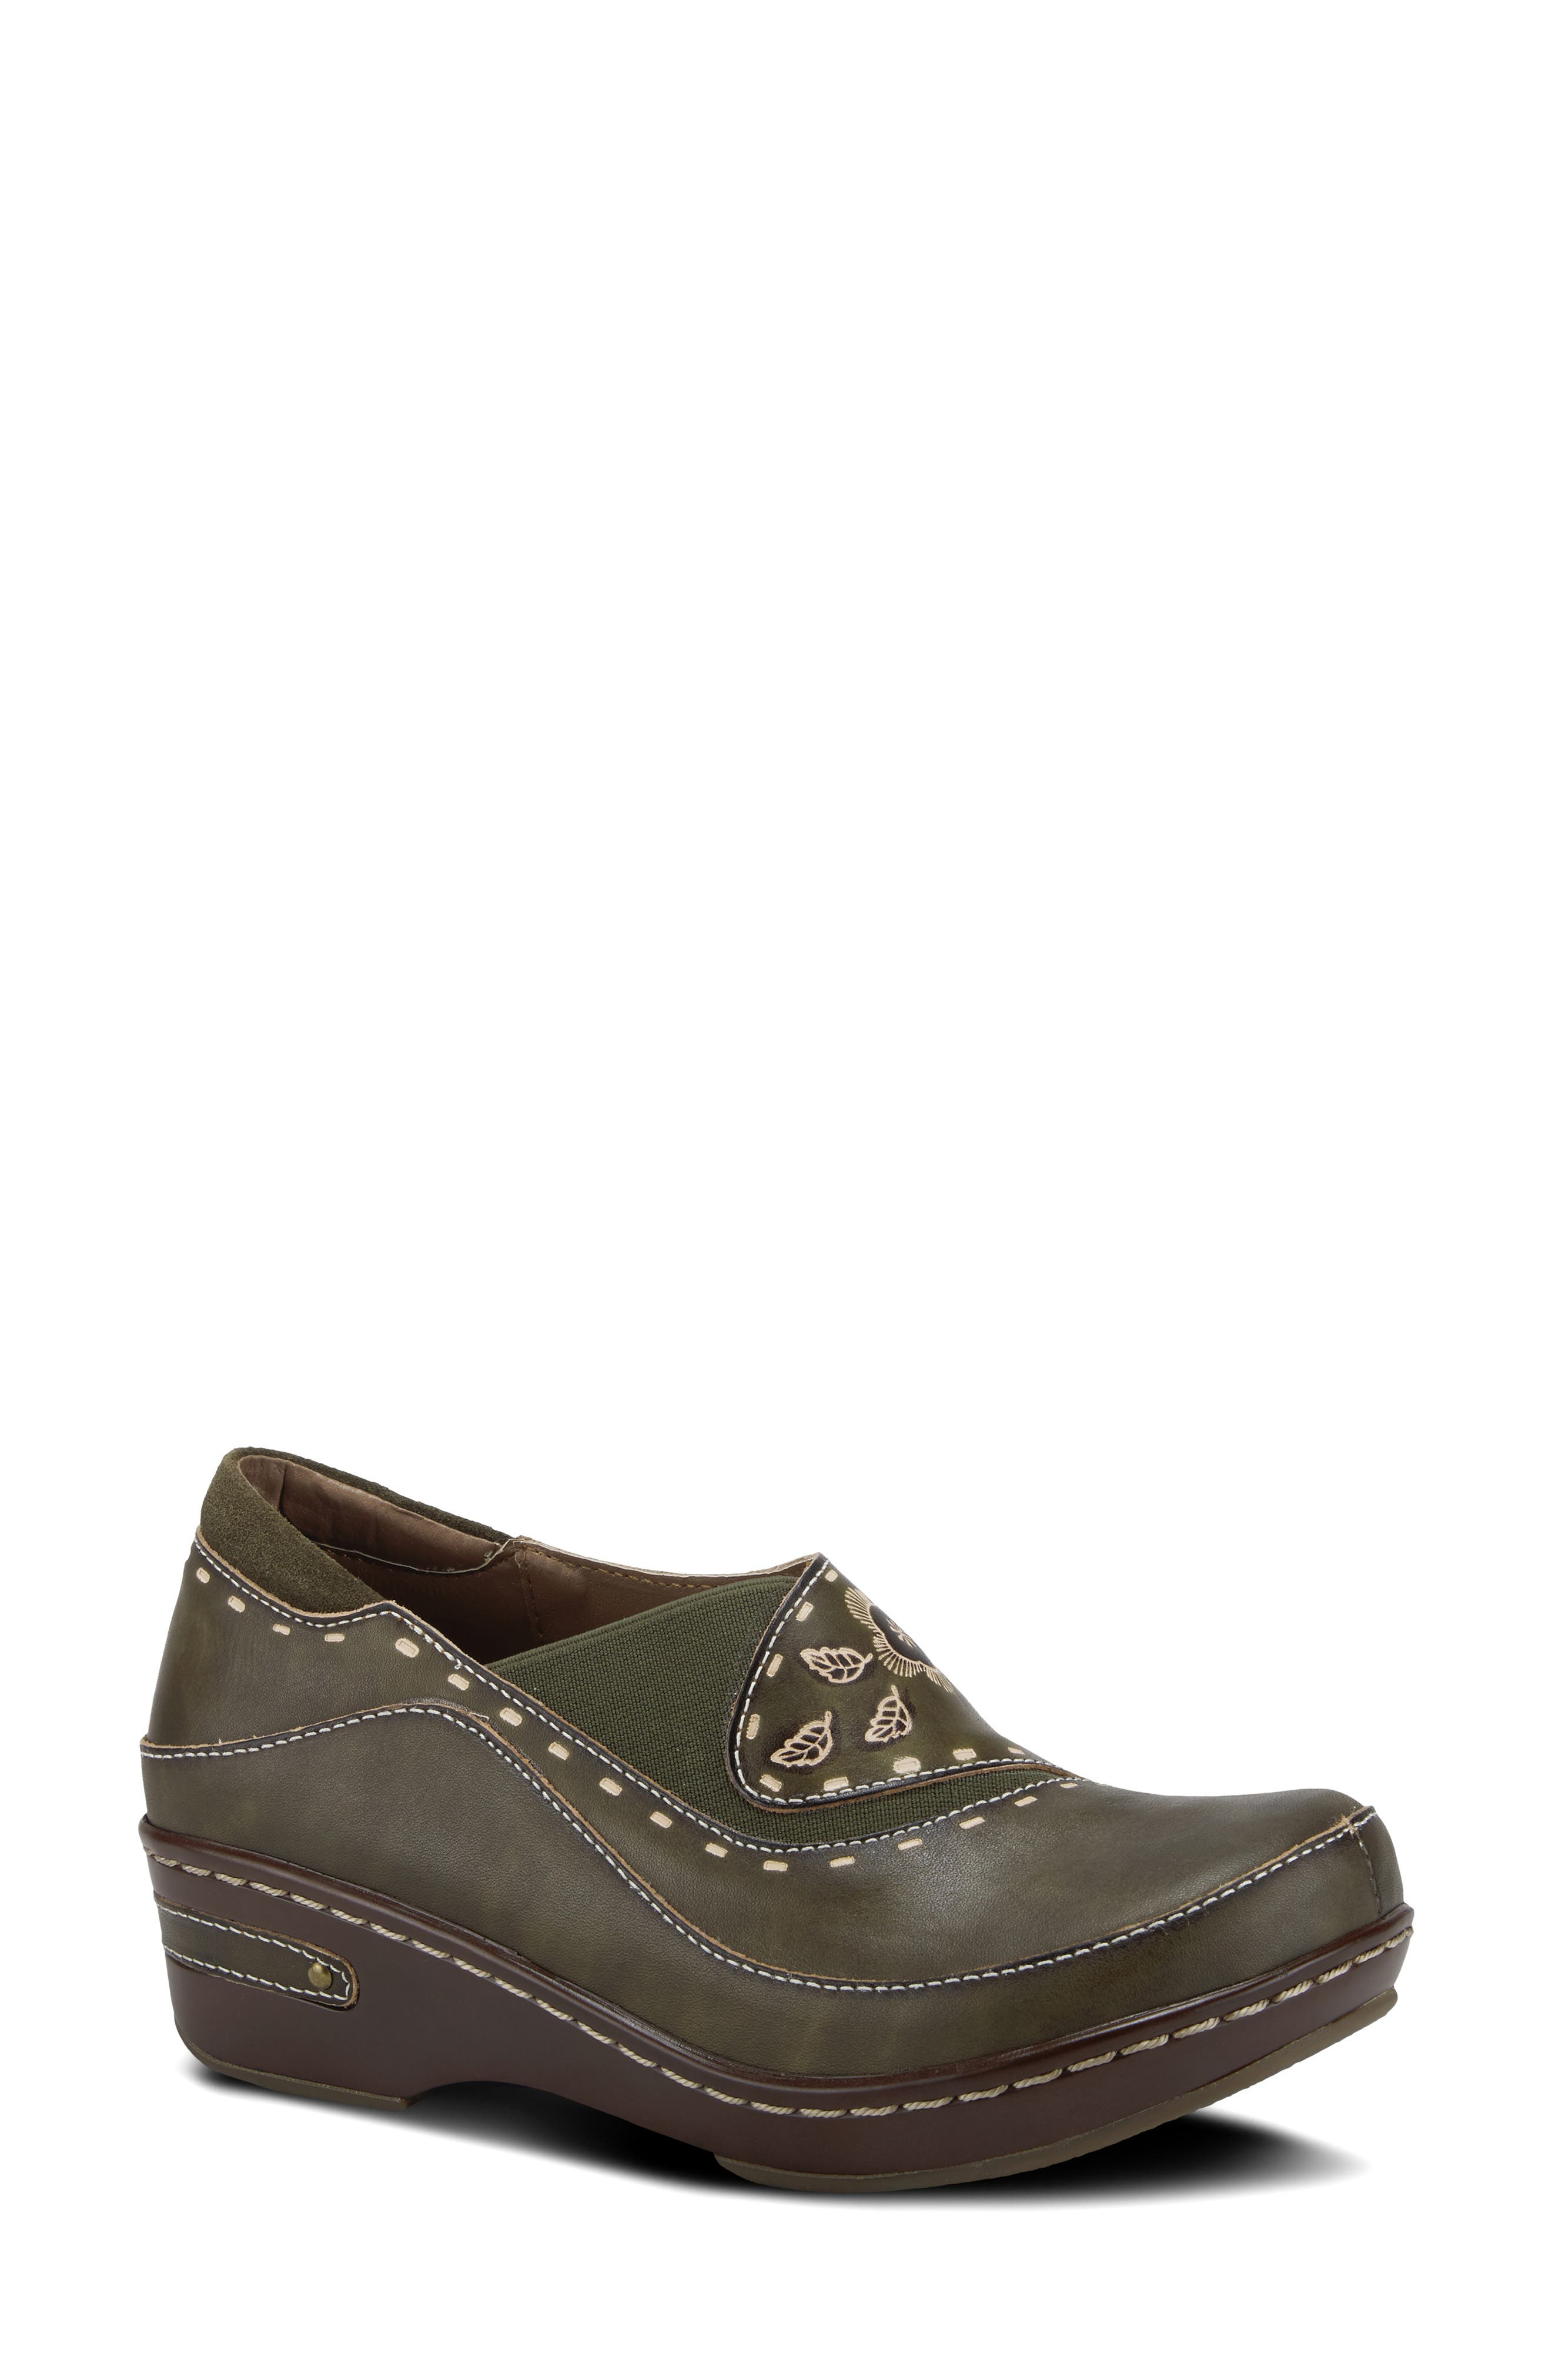 Hand-painted and hand-tooled leather distinguishes this comfy clog made with contoured elastic goring and high-density memory foam cushioning. Style Name:L\\\'Artiste Burbank Clog (Women). Style Number: 6117446. Available in stores.